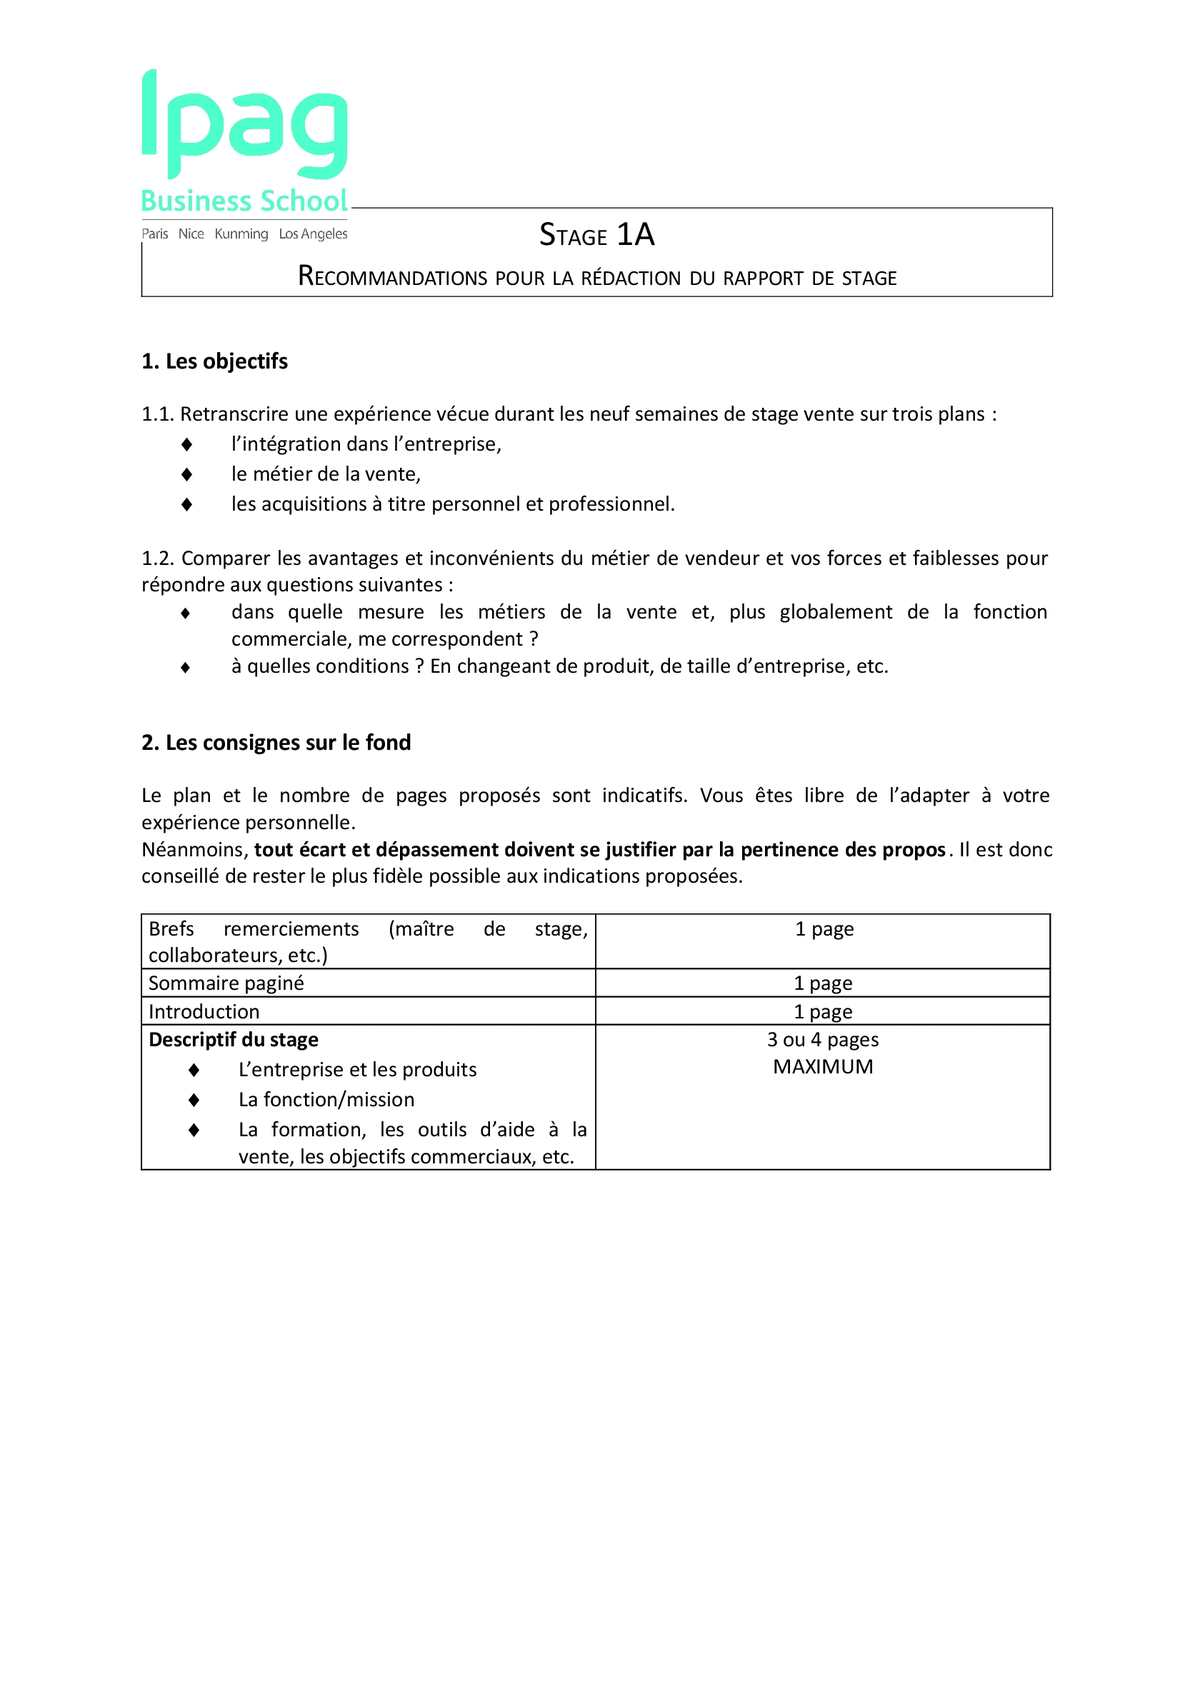 Calaméo Stage 1a Recommandations Rapport De Stage